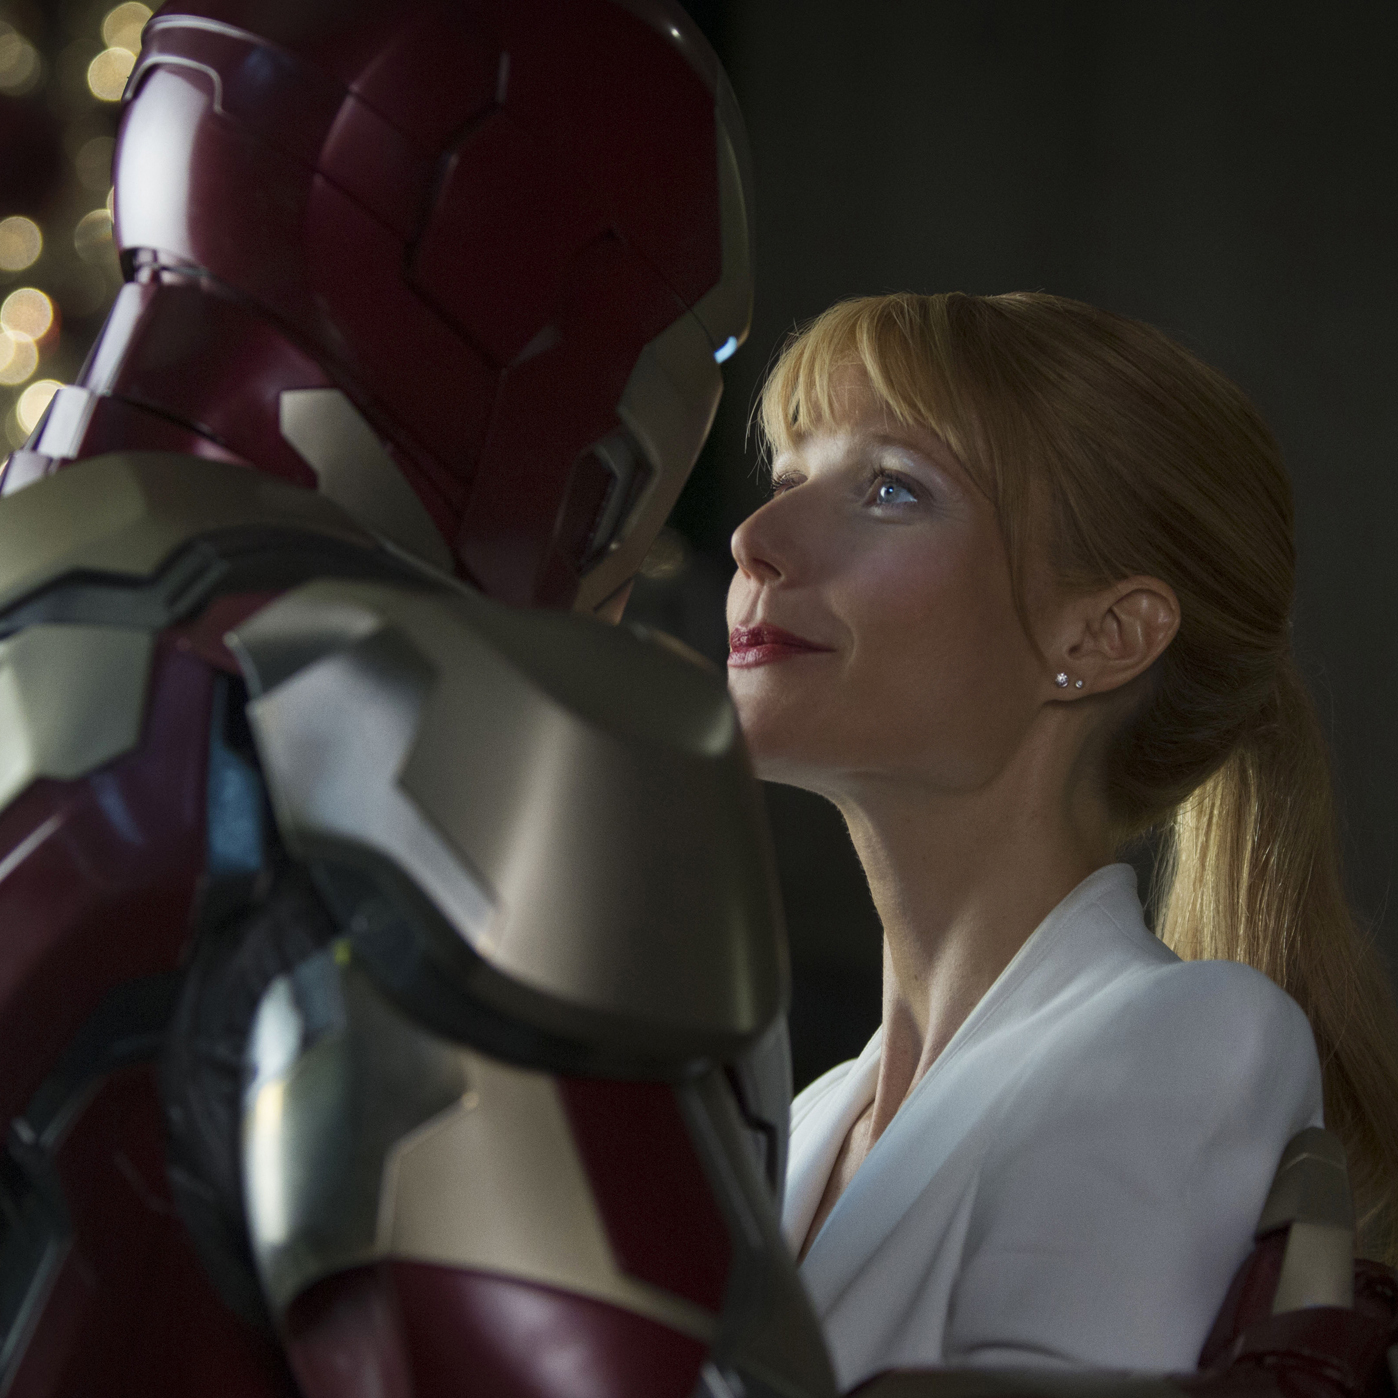 Iron Man 3 was able to take advantage of North Carolina's increased incentives when it filmed in 2012.